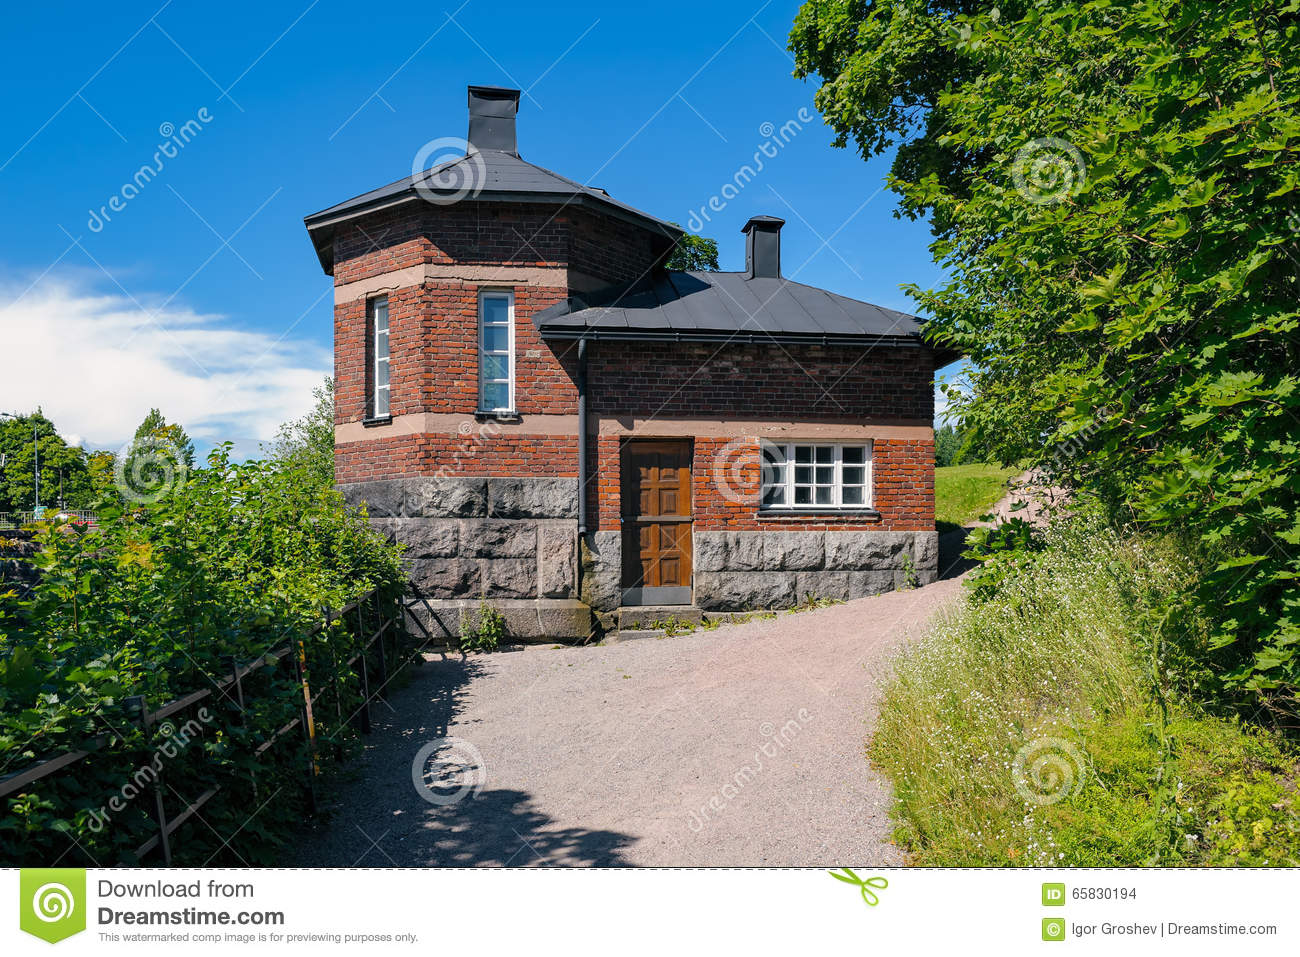 Exterior Of An Old Brick House On A Stone Foundation Stock Photo ...